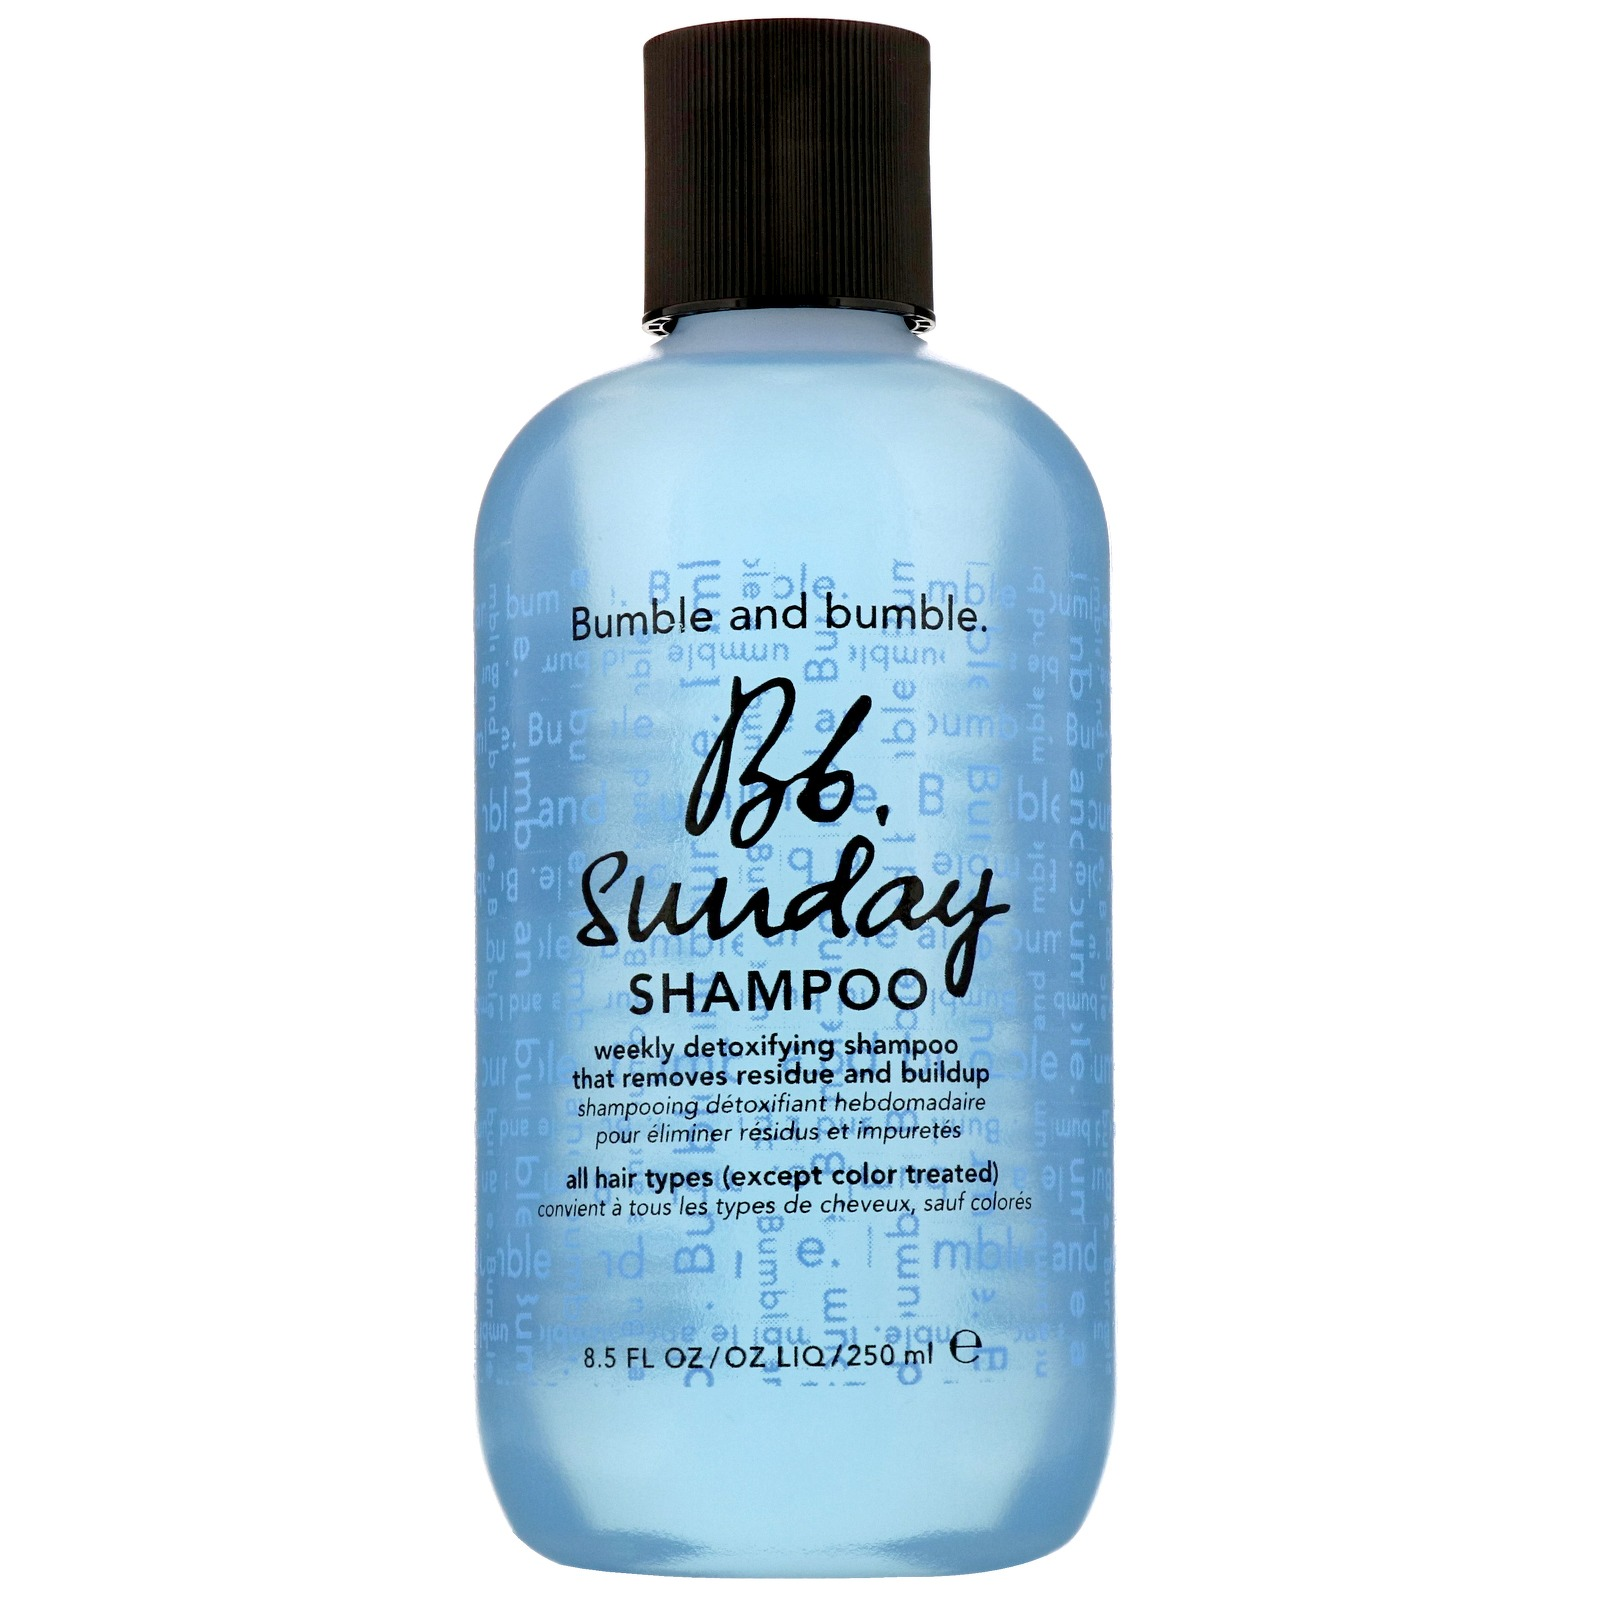 Bumble and bumble Sunday Shampoo 250ml